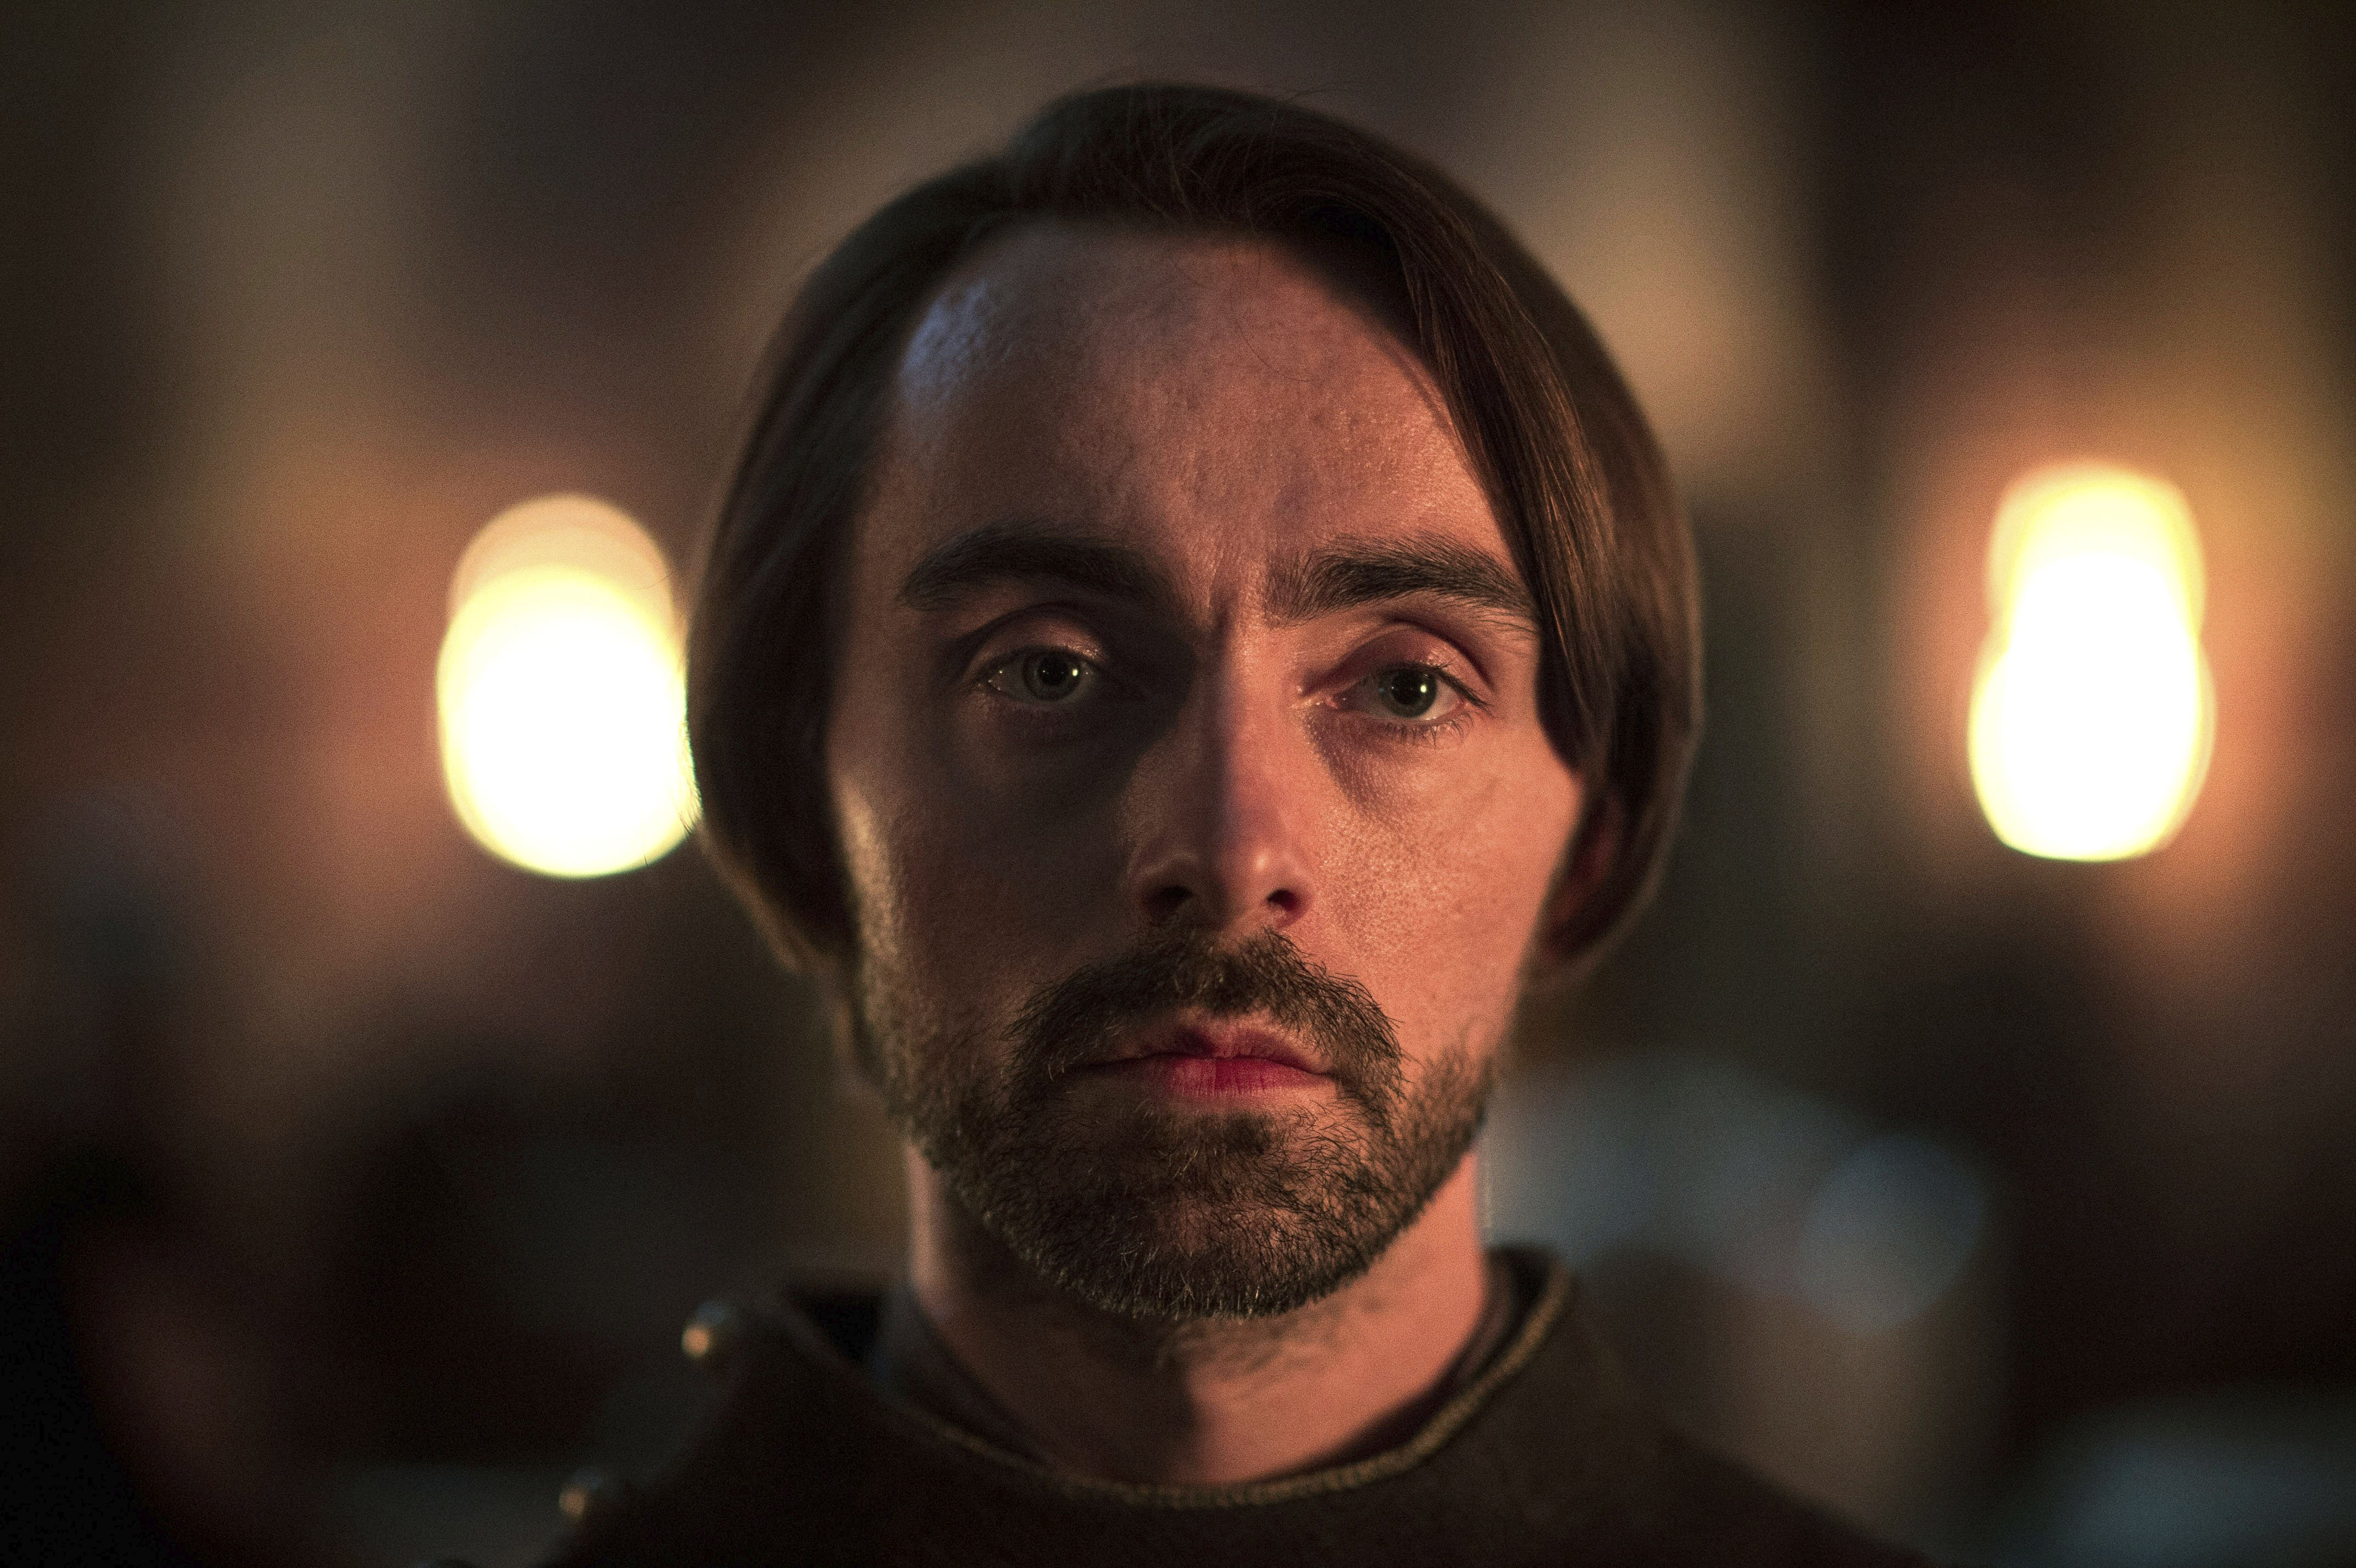 david dawson artistdavid dawson choreographer, david dawson actor, david dawson facebook, david dawson grey area, david dawson ballet, david dawson wife, david dawson instagram, david dawson artist, david dawson, david dawson lucian freud, david dawson imdb, david dawson peaky blinders, david dawson actor gay, david dawson the last kingdom, david dawson banished, david dawson wiki, david dawson giselle, david dawson tumblr, david dawson lucien freud, david dawson michigan